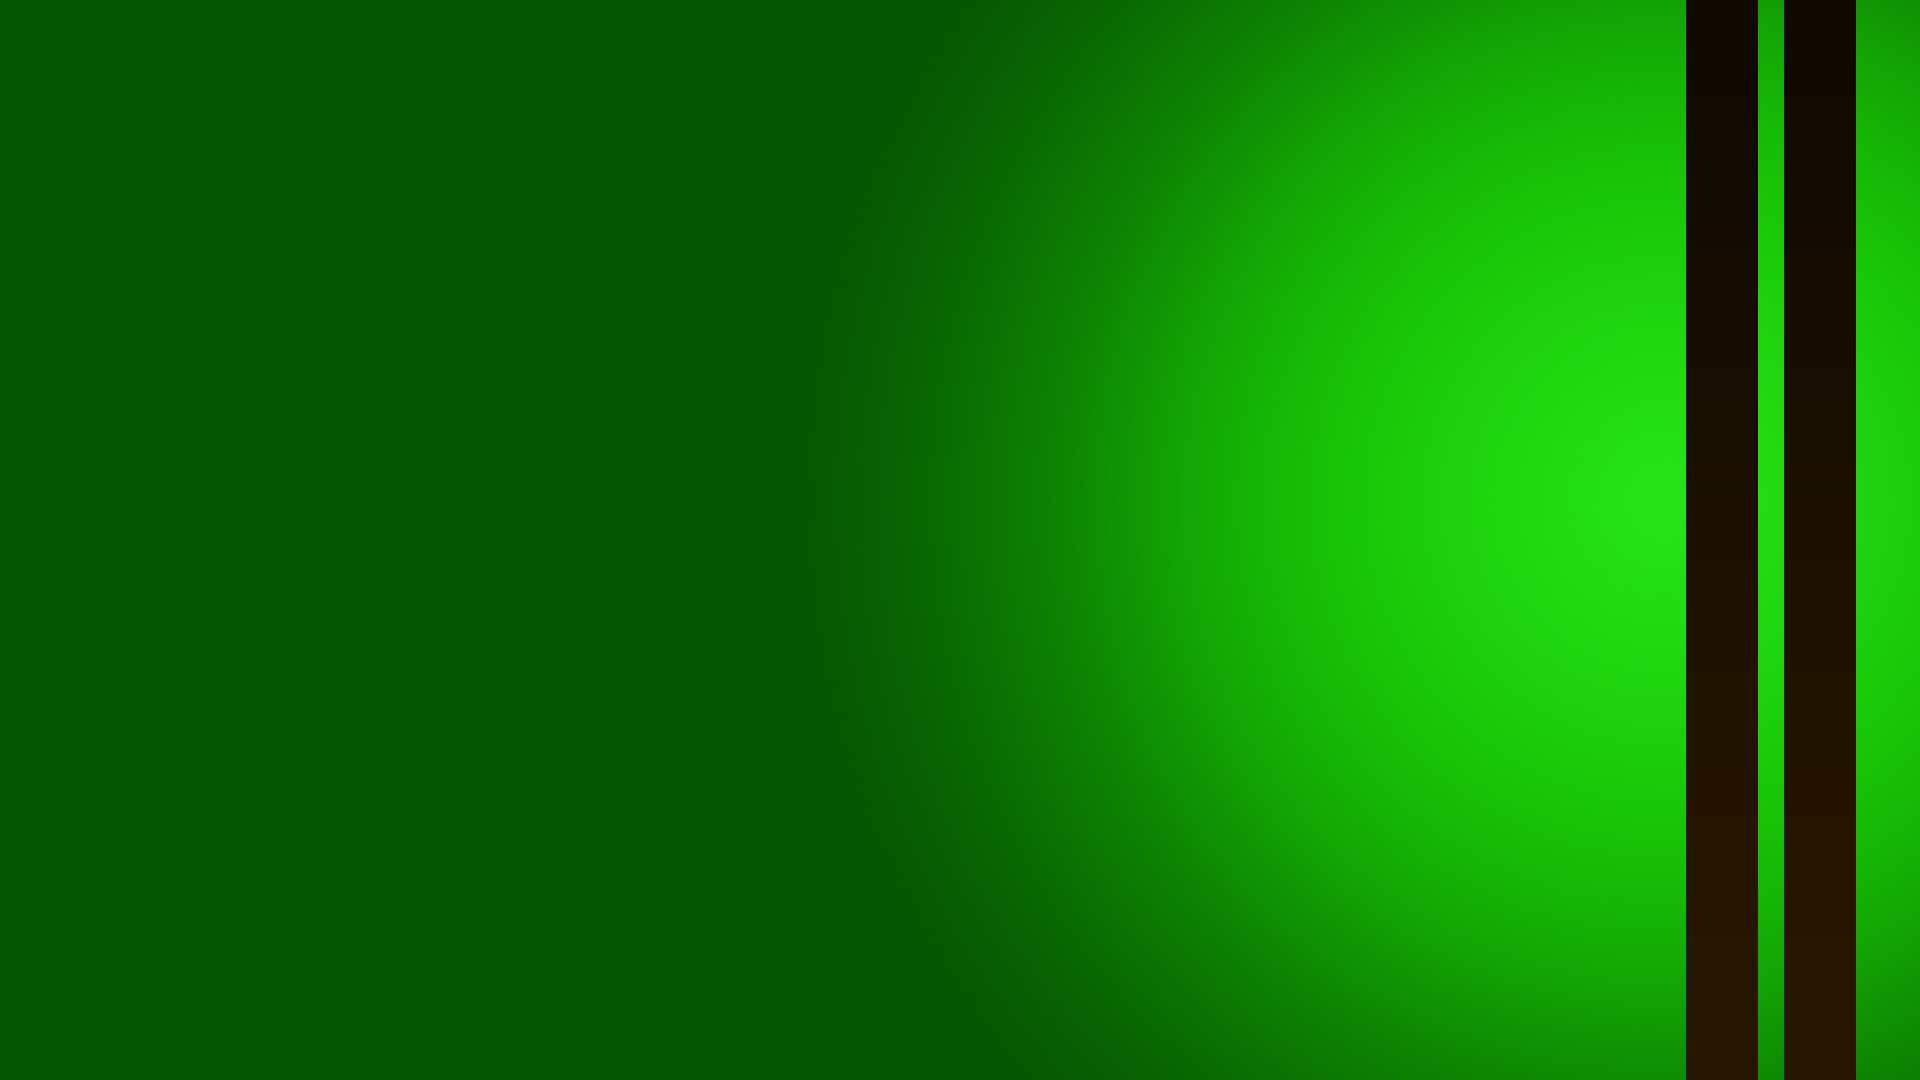 Green Hd Wallpapers 54 Wallpapers Adorable Wallpapers